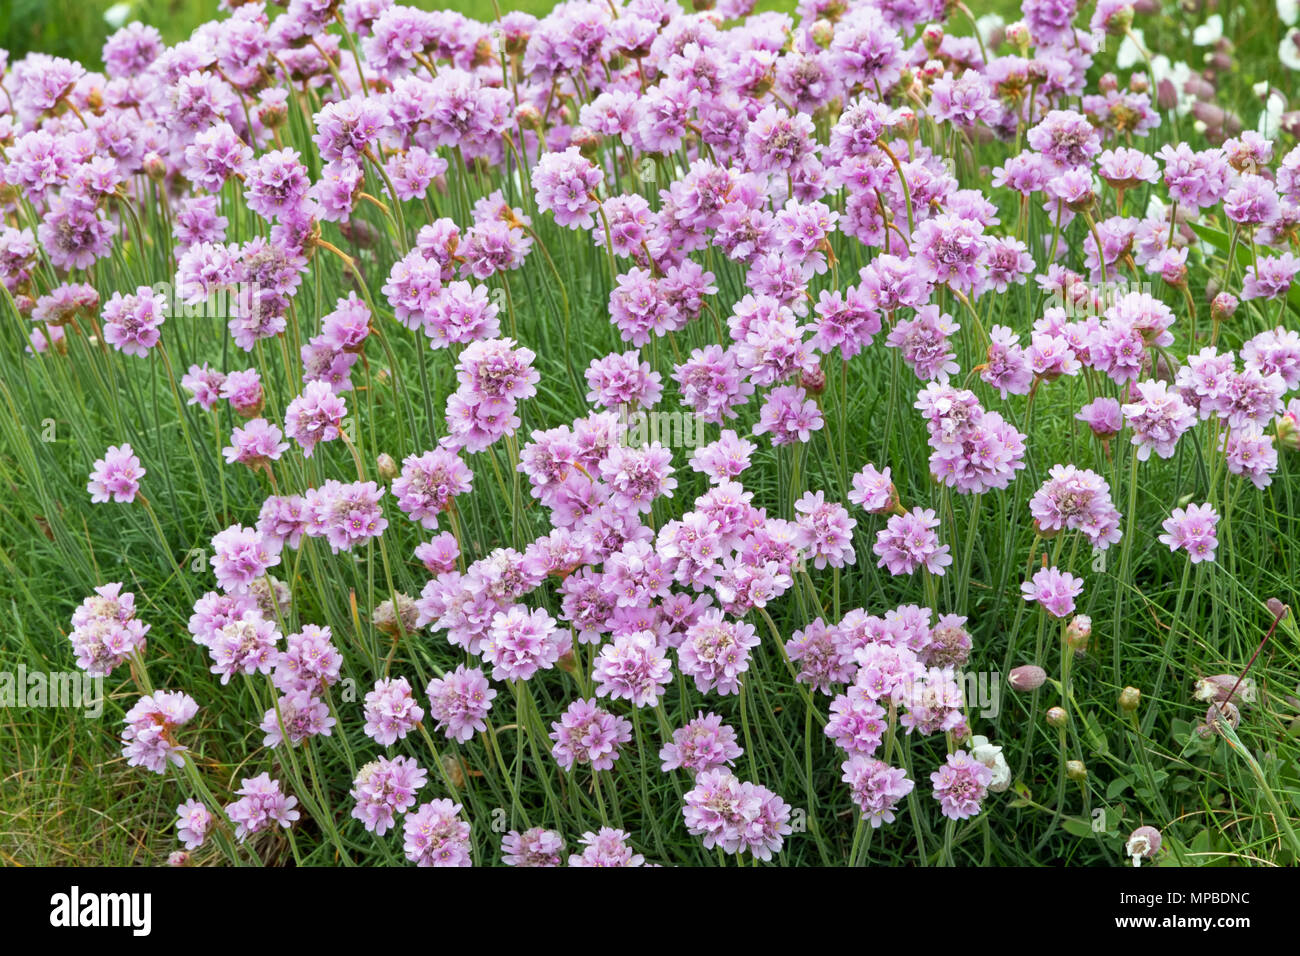 Wild flower sea pinks plumbaginaceae stock photos wild flower sea clump of sea pinks armeria maritima stock image mightylinksfo